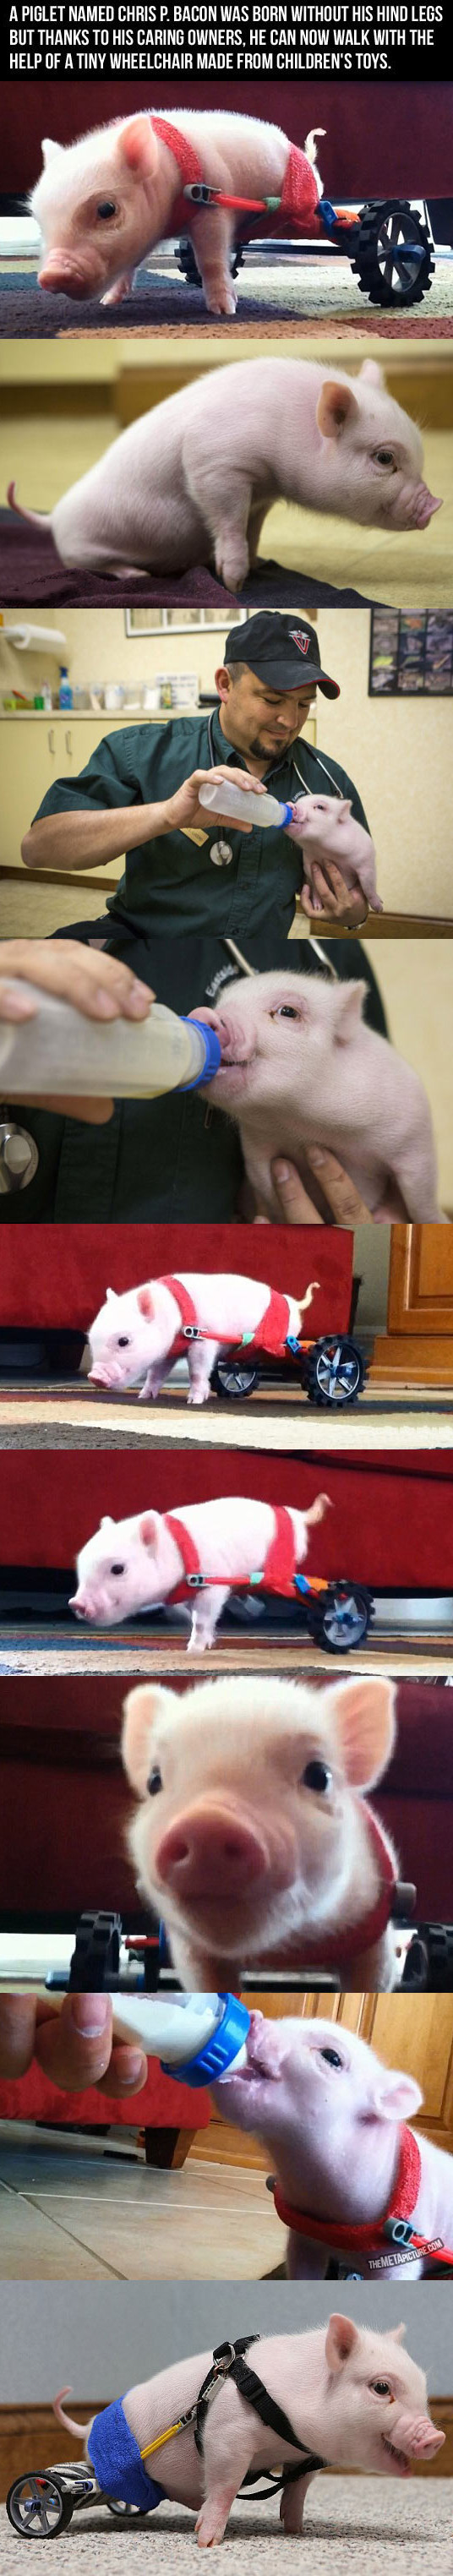 cool-baby-pig-wheels